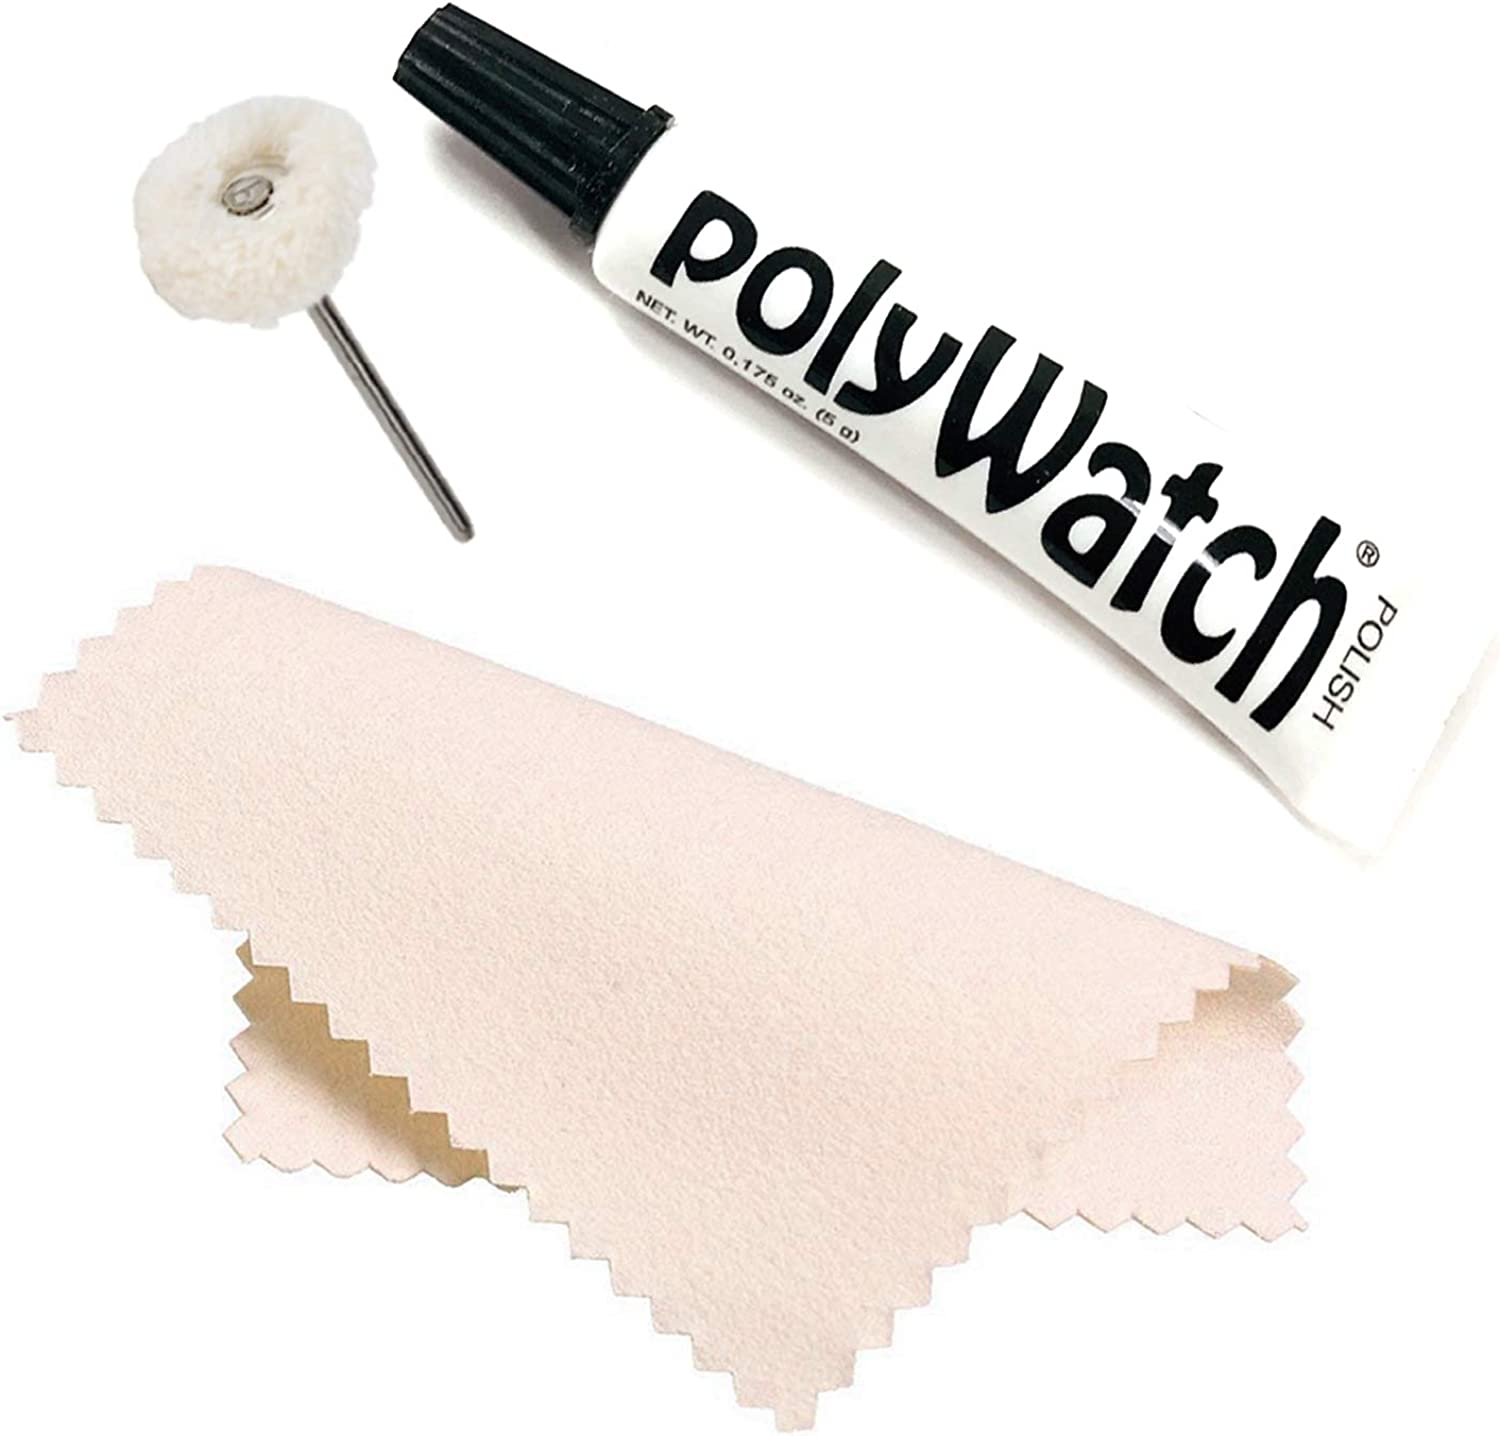 Polywatch Plastic Watch Crystal Scratch Remover String Buff Soft Polisher and Polishing Cloth